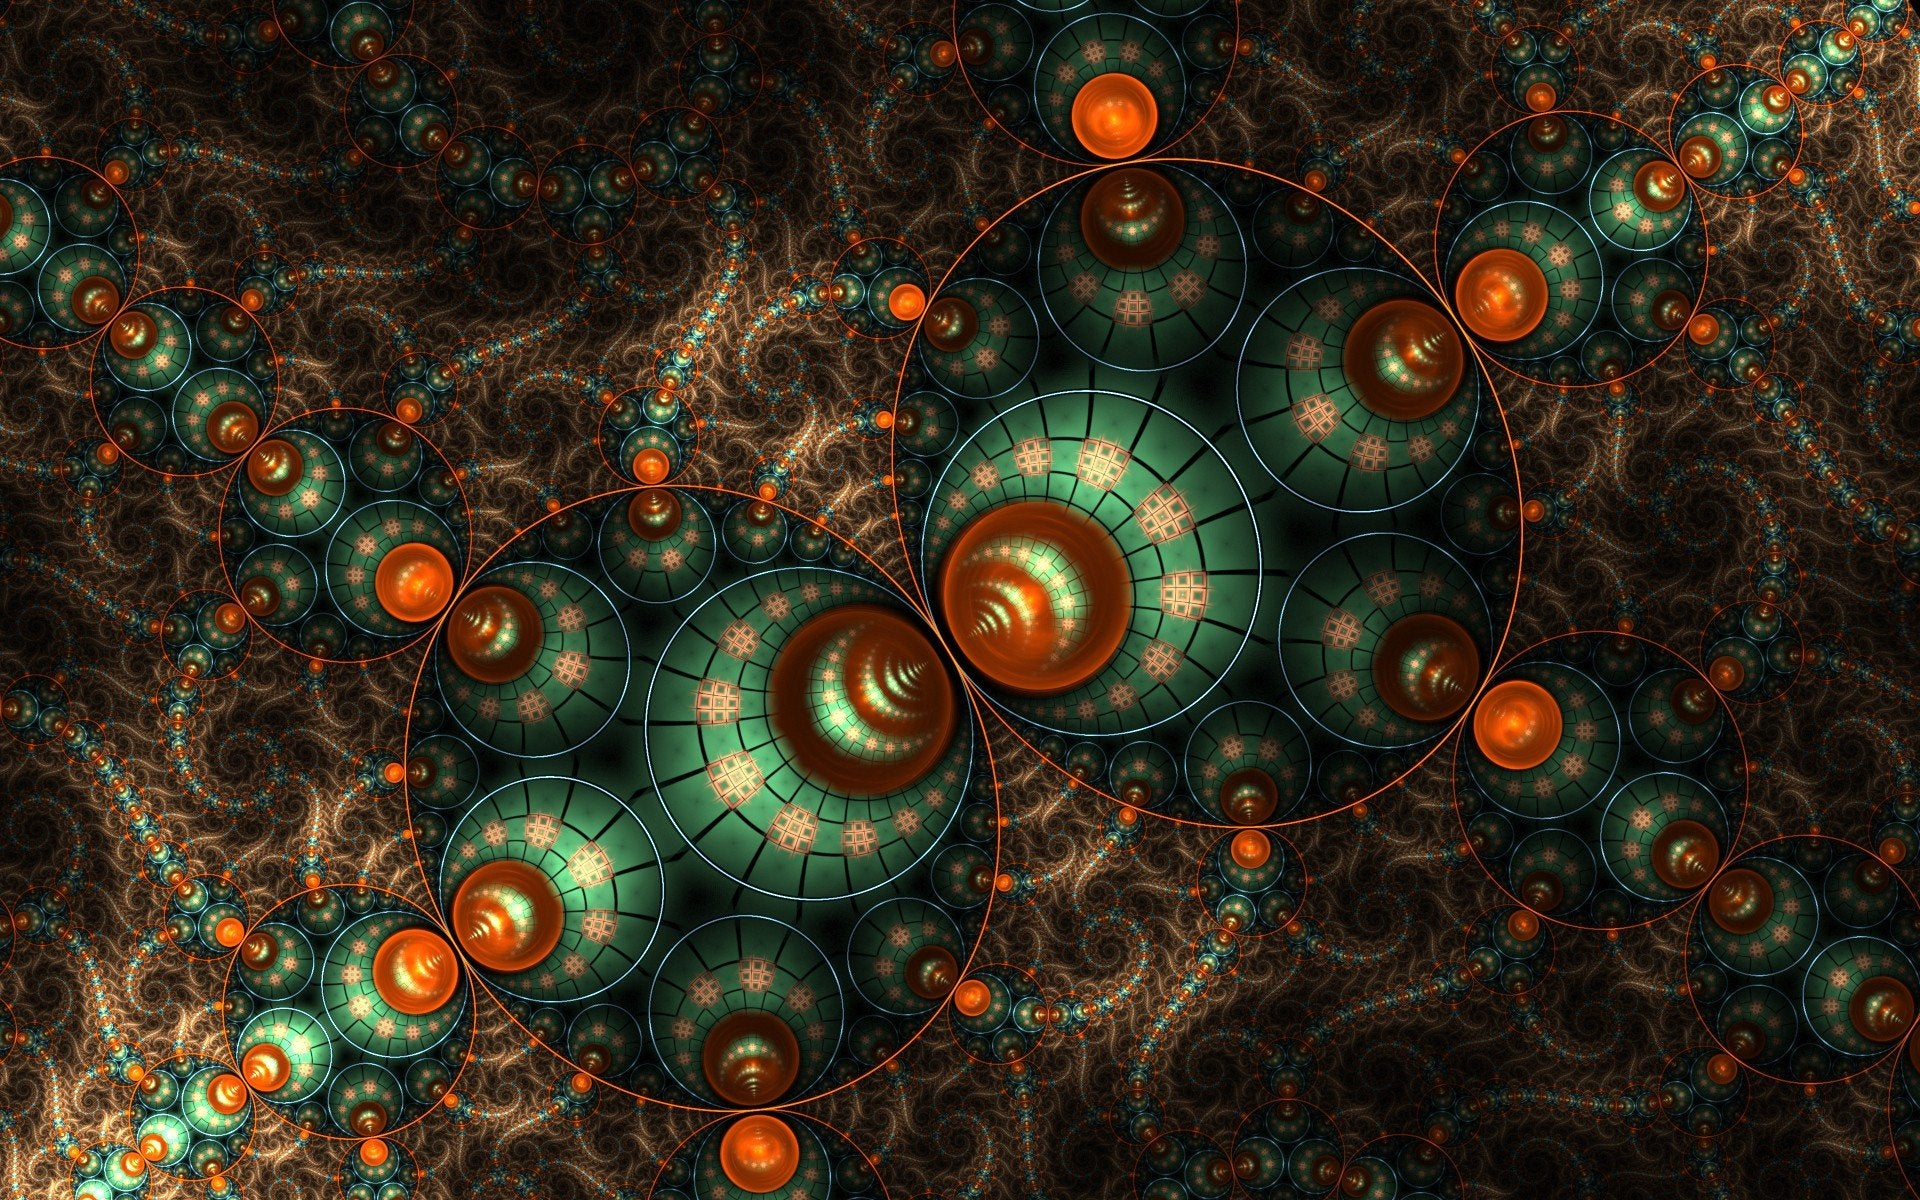 Straddle the Line Between Maths and Art with These Fractal Wallpapers